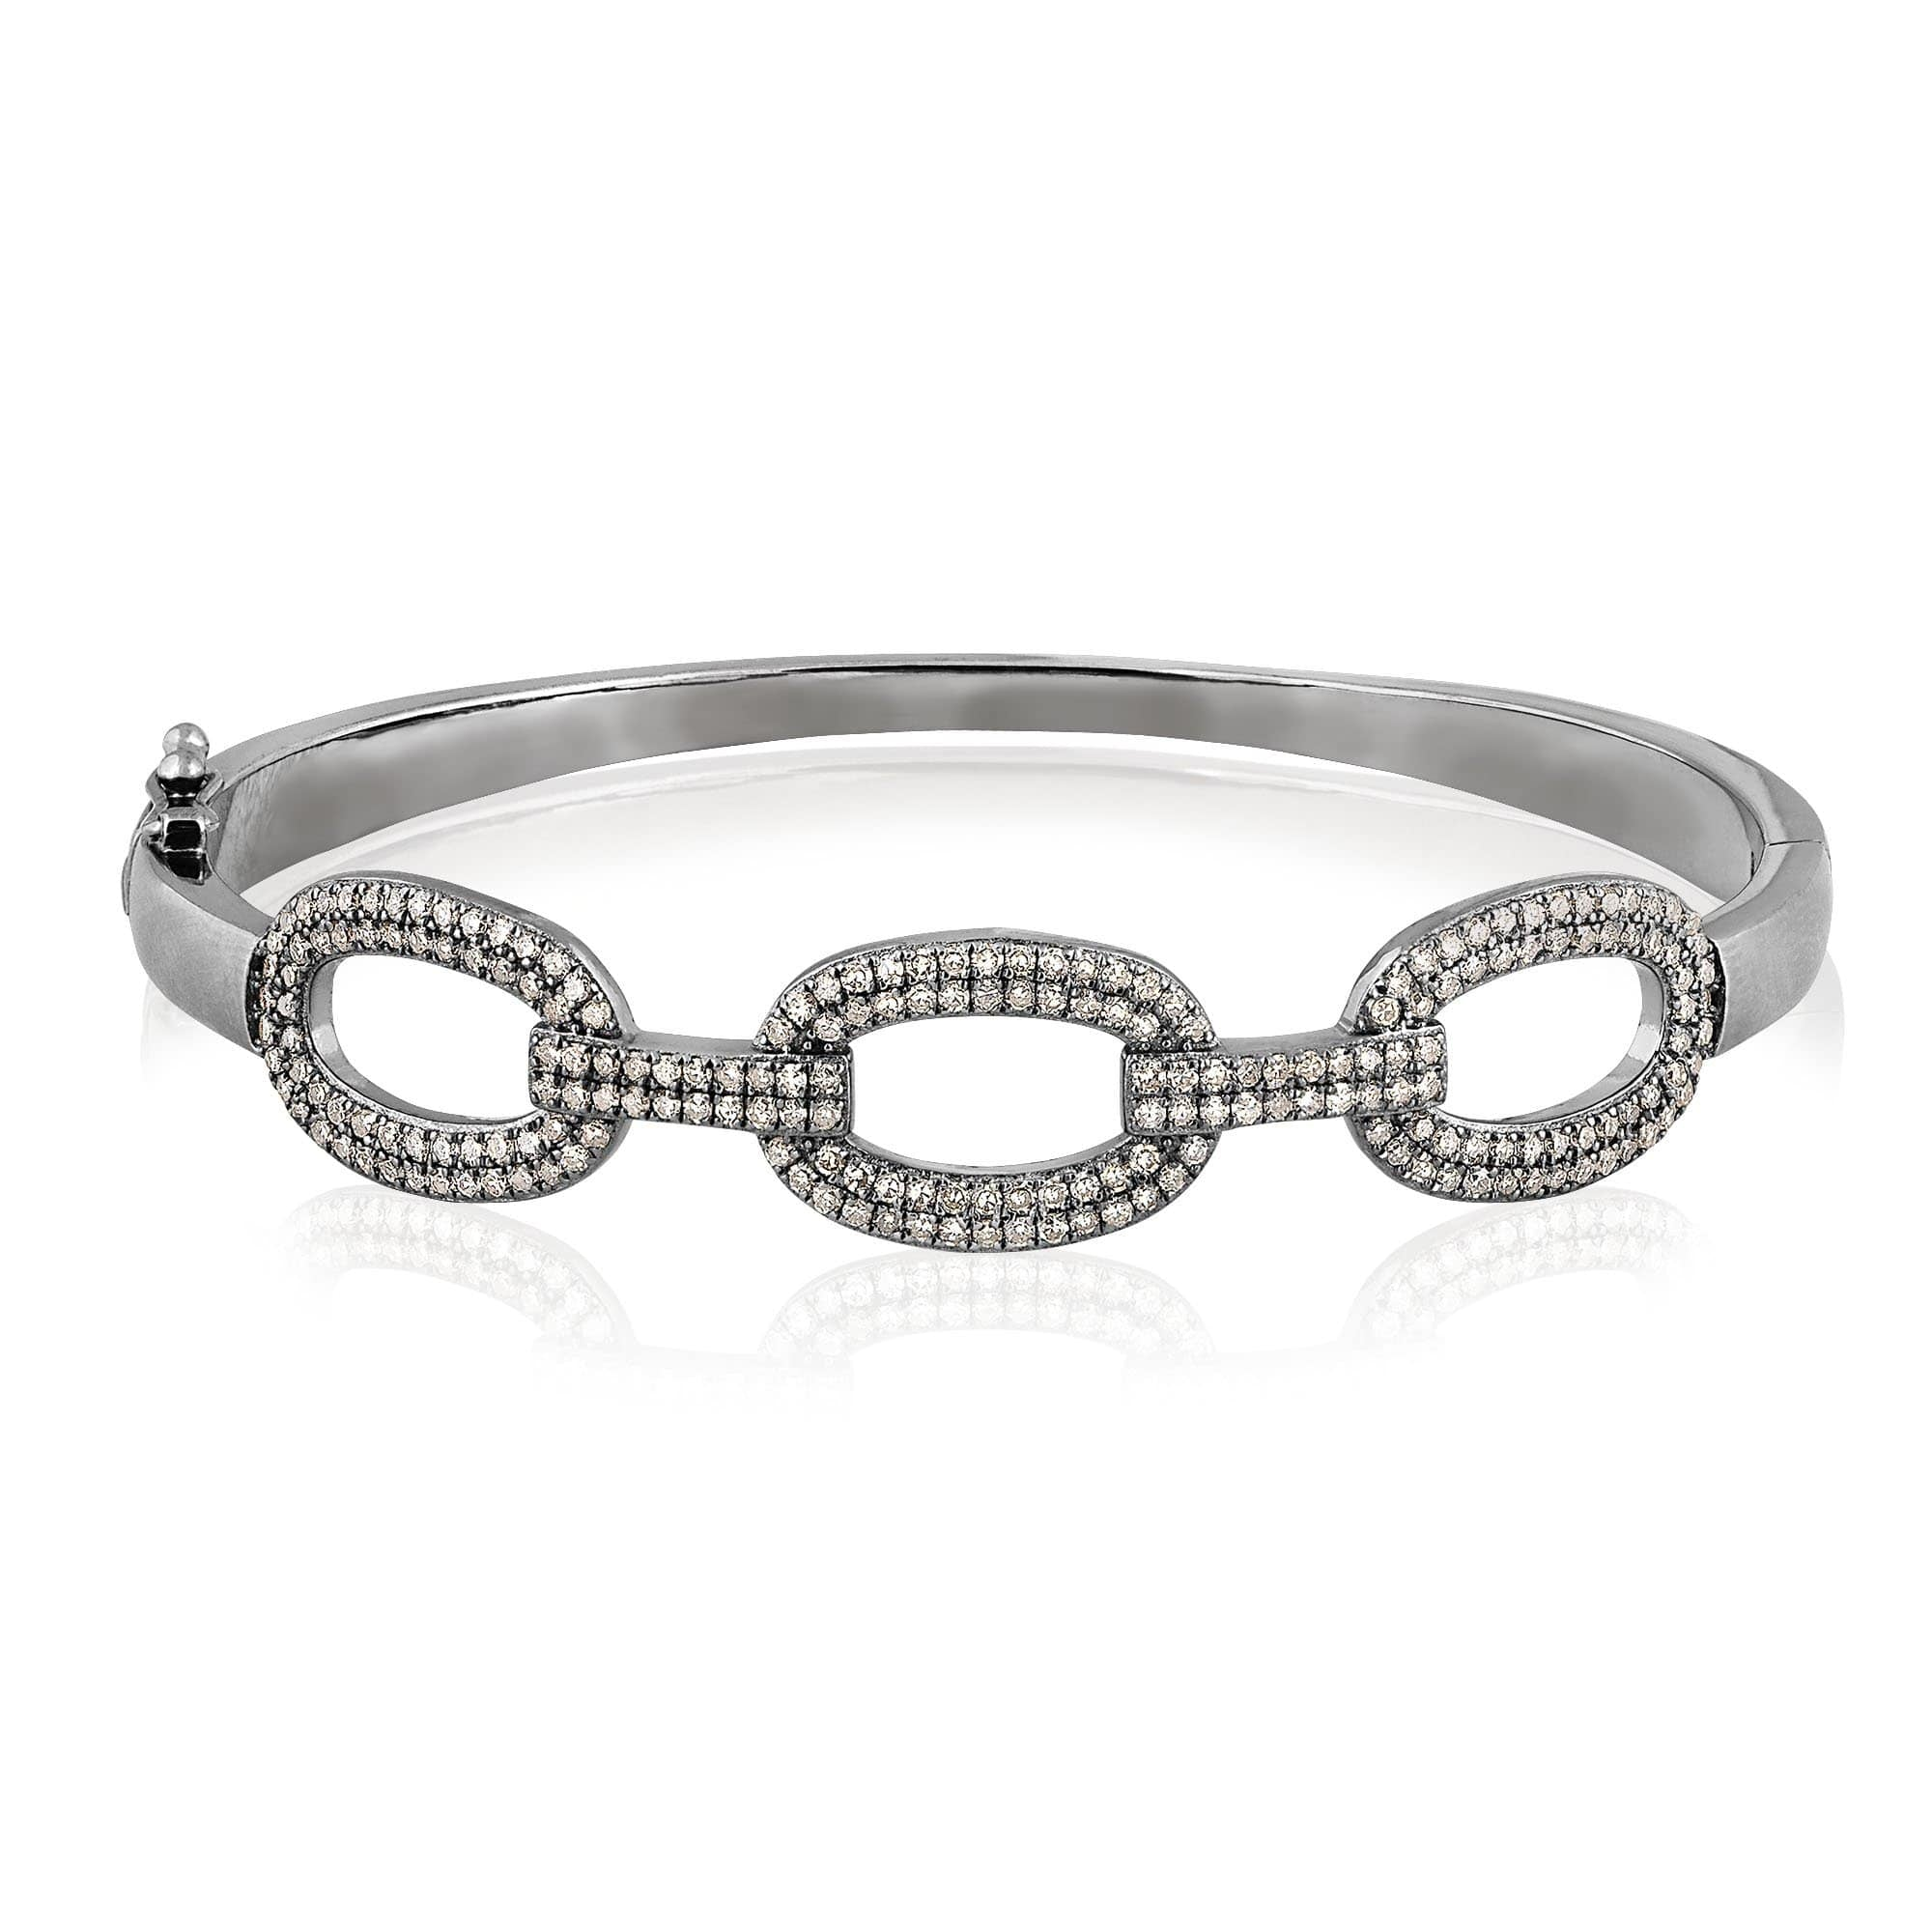 ela rae link luxe diamond bangle sterling silver